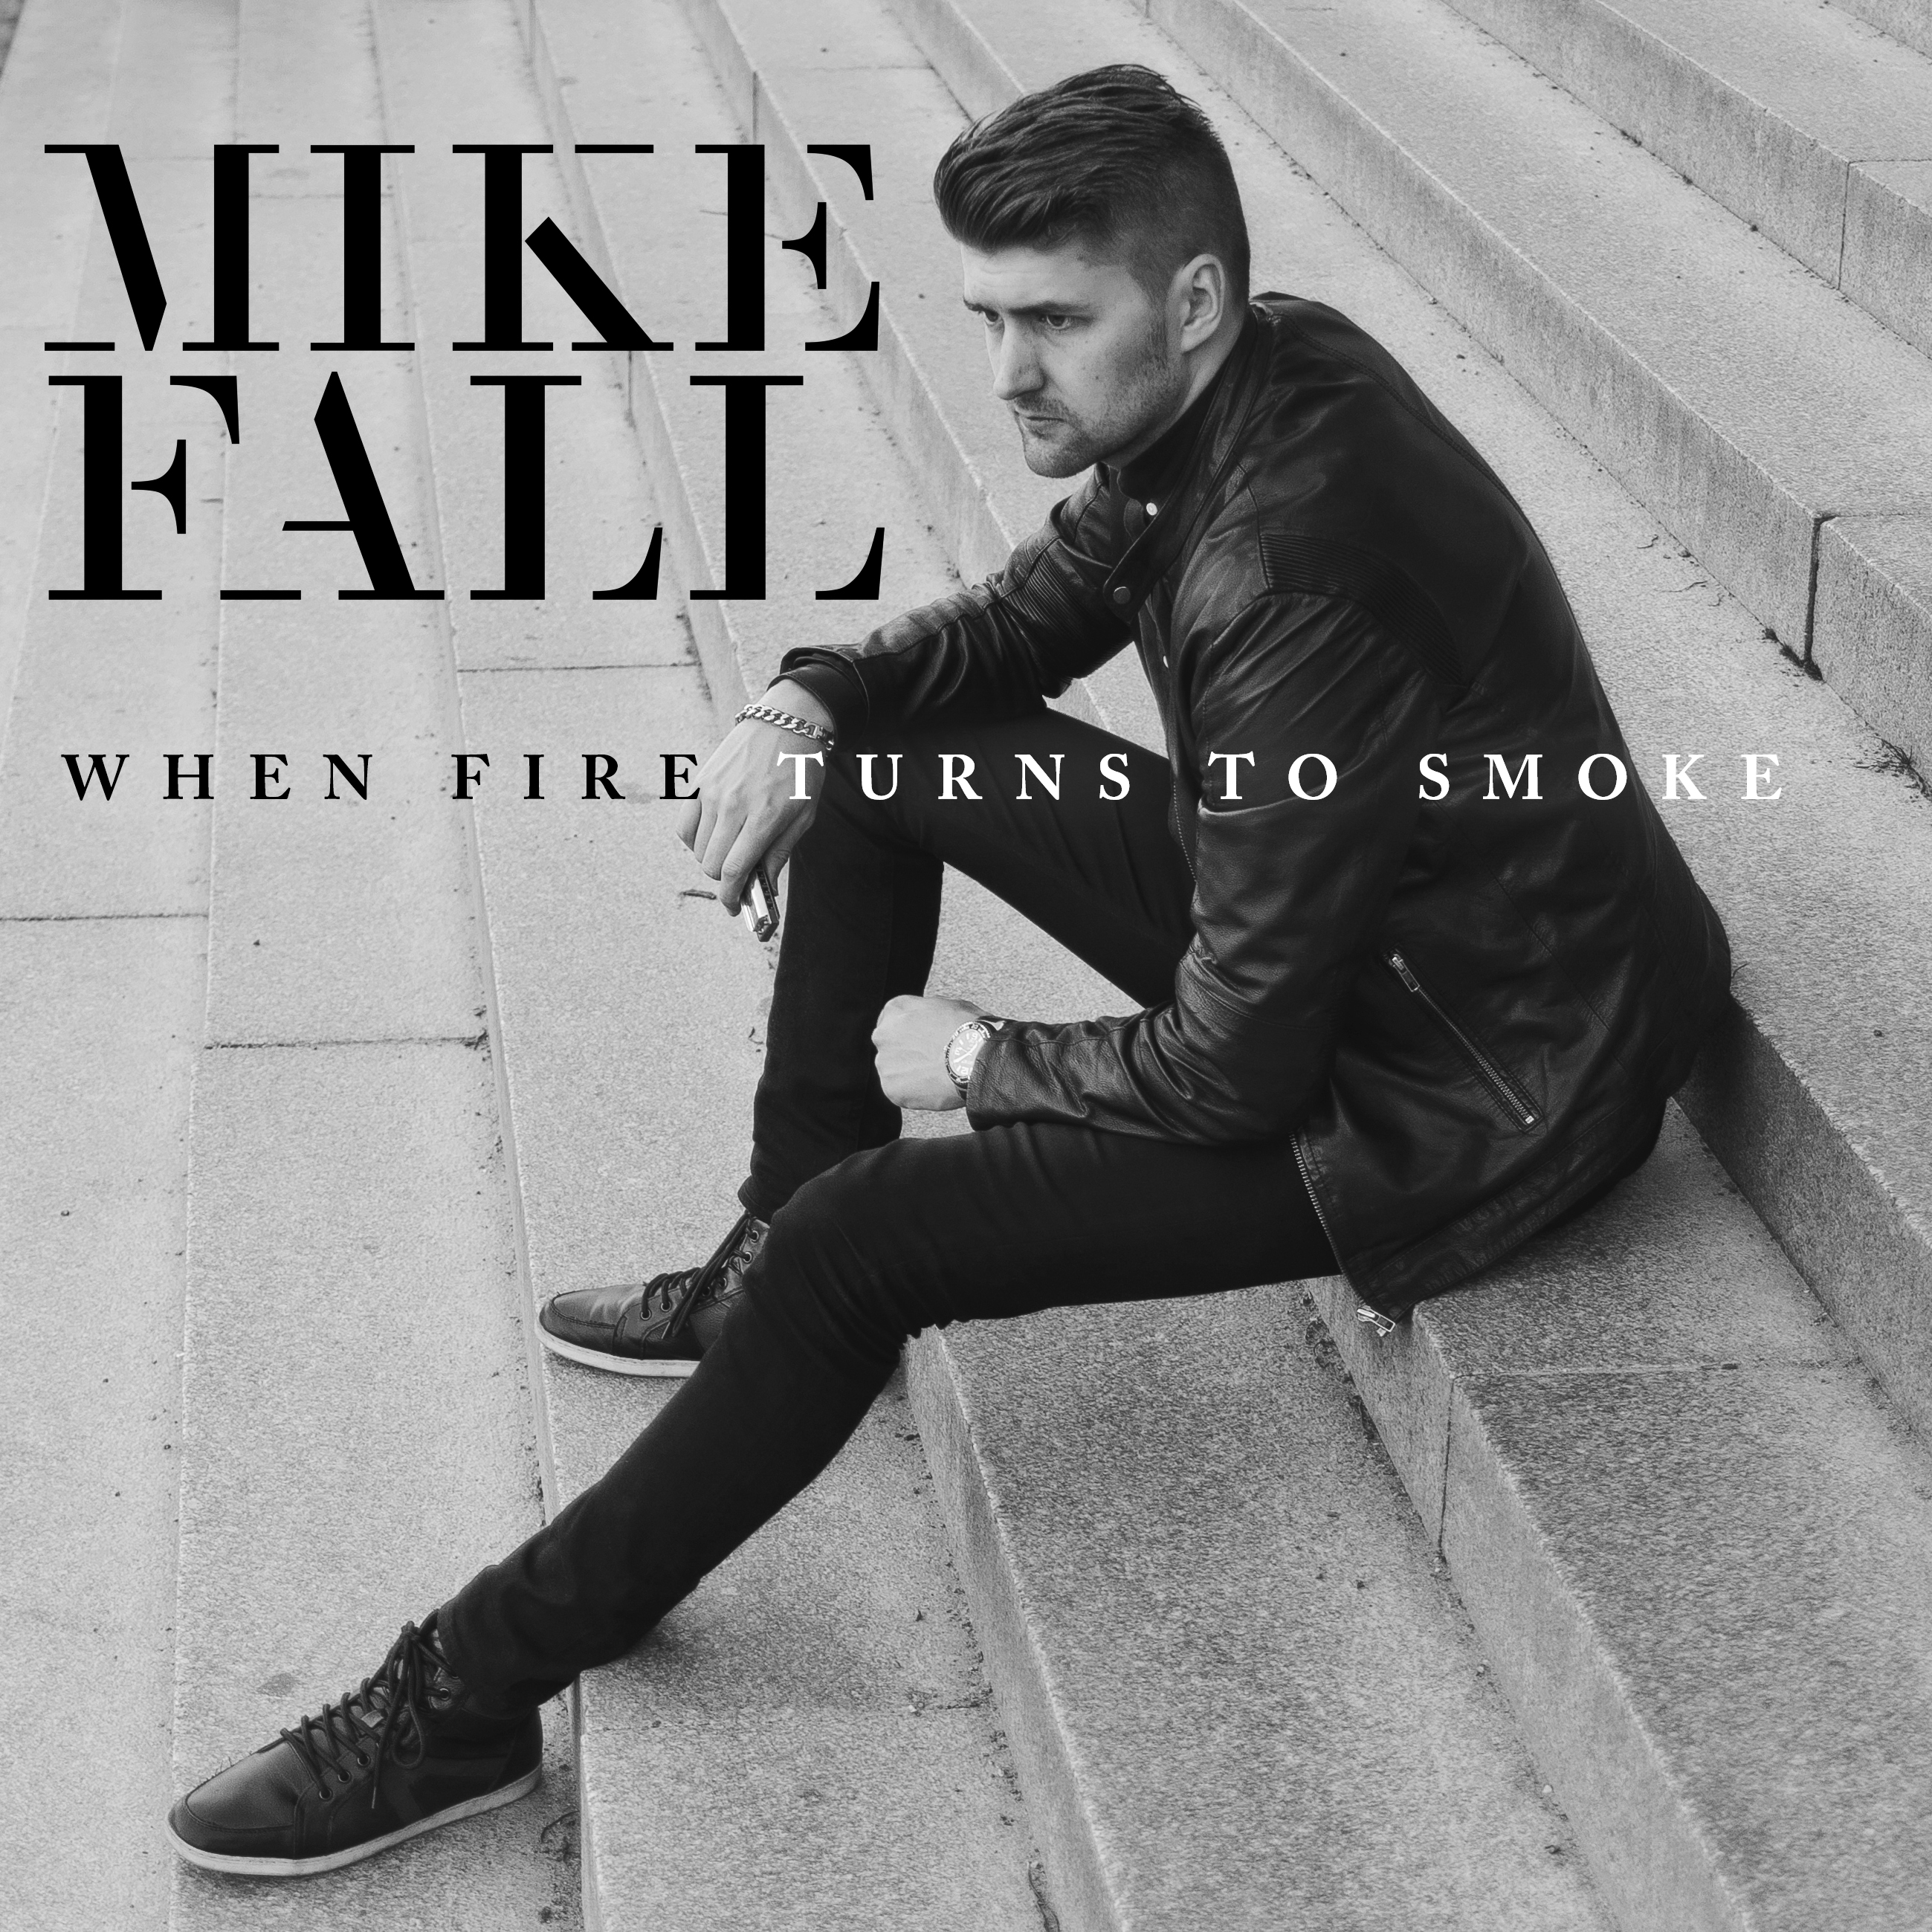 Mike Fall - When Fire Turns To Smoke